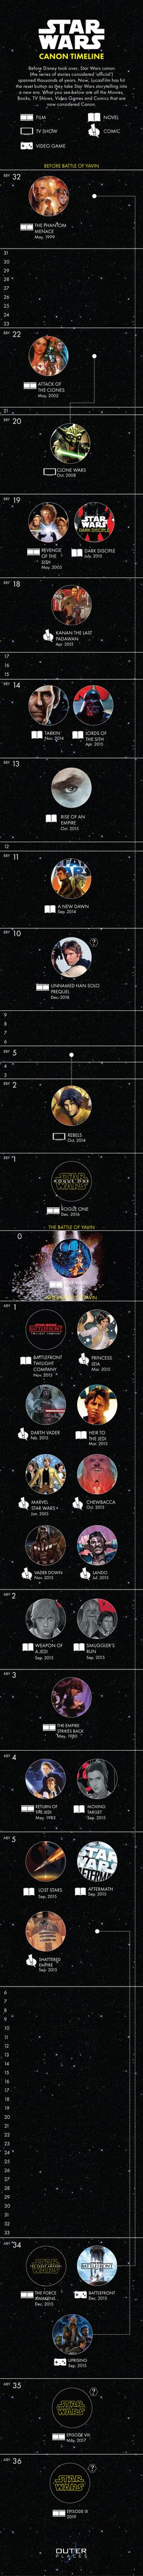 Quick Guide to Star Wars Timeline, just in time for the new movies.